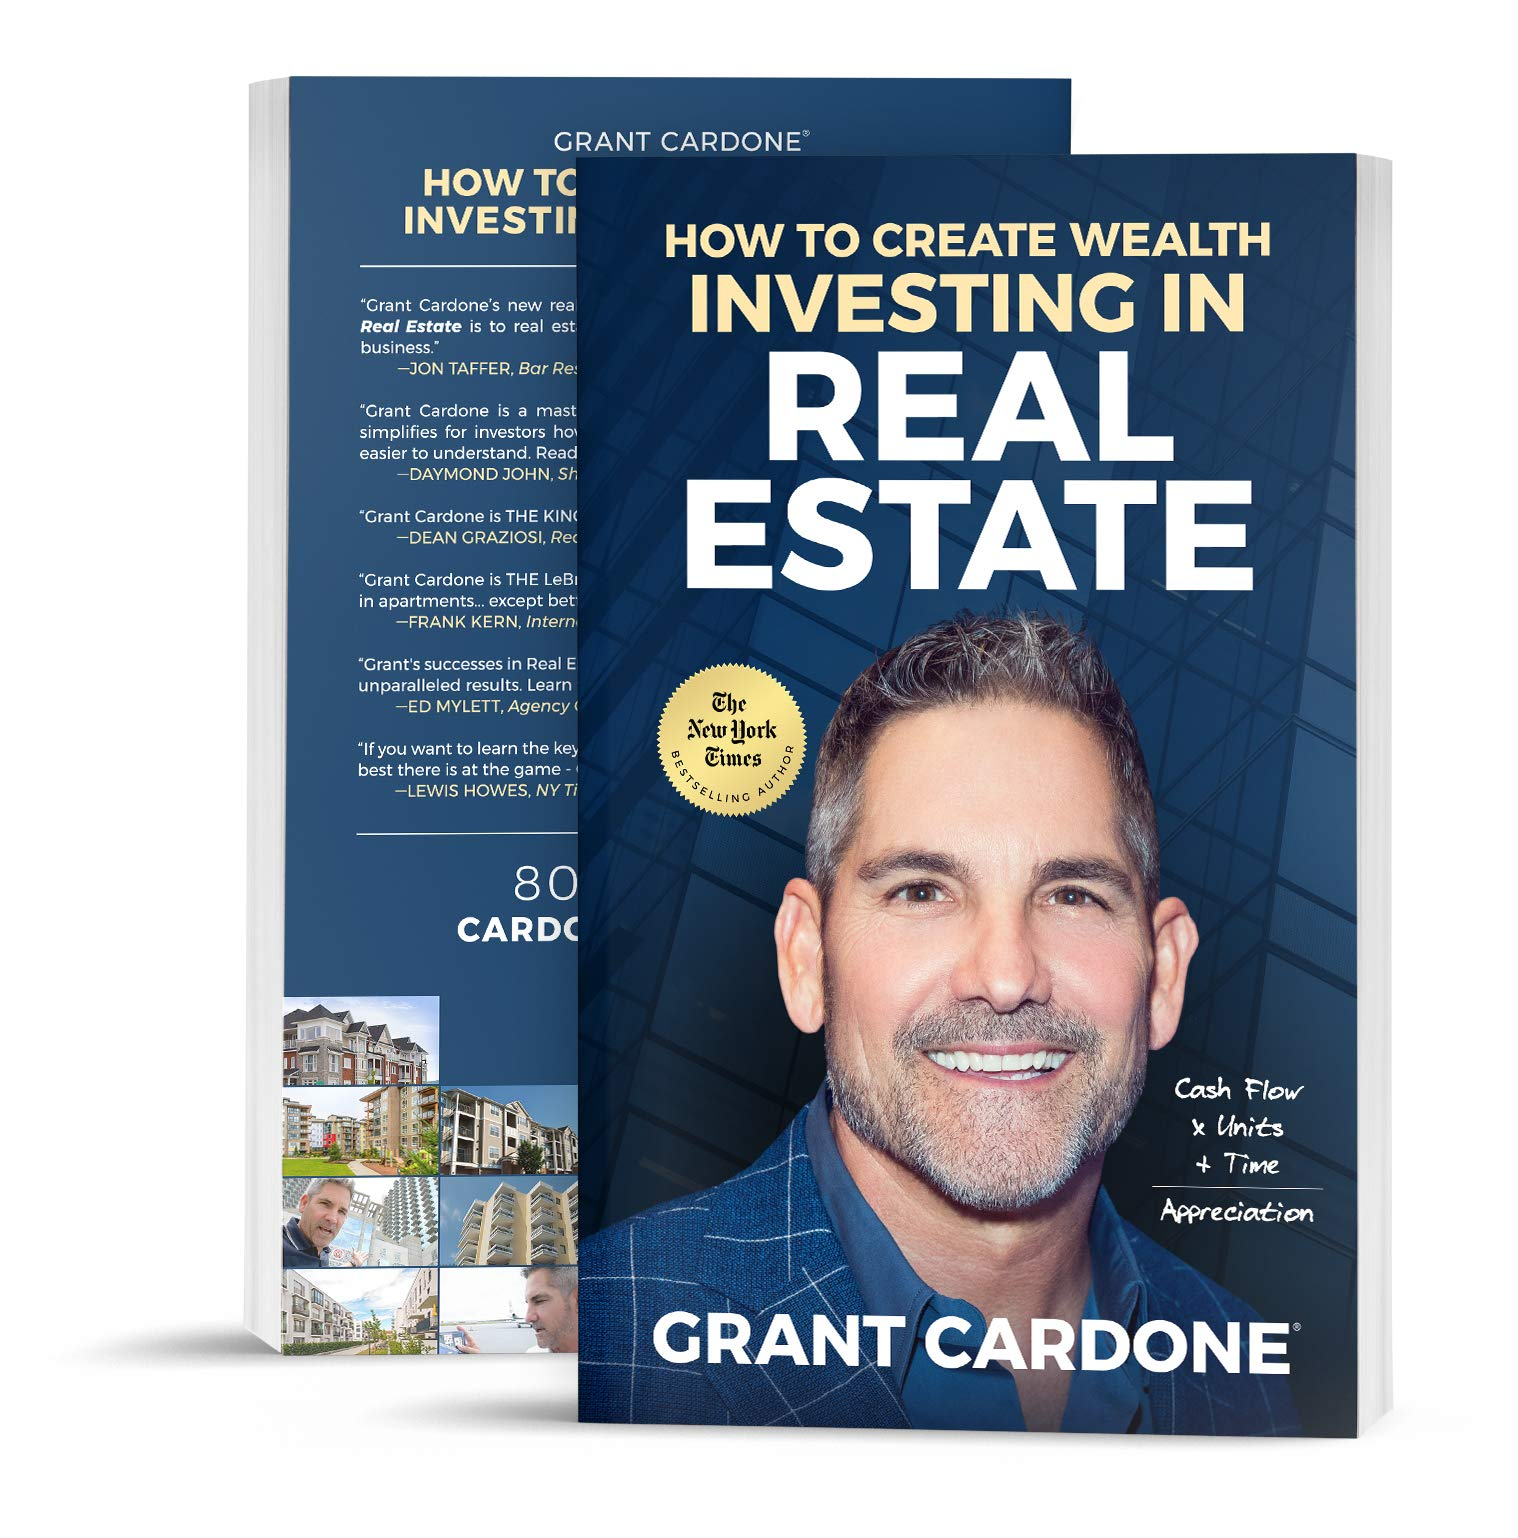 Create Wealth Investing Real Estate